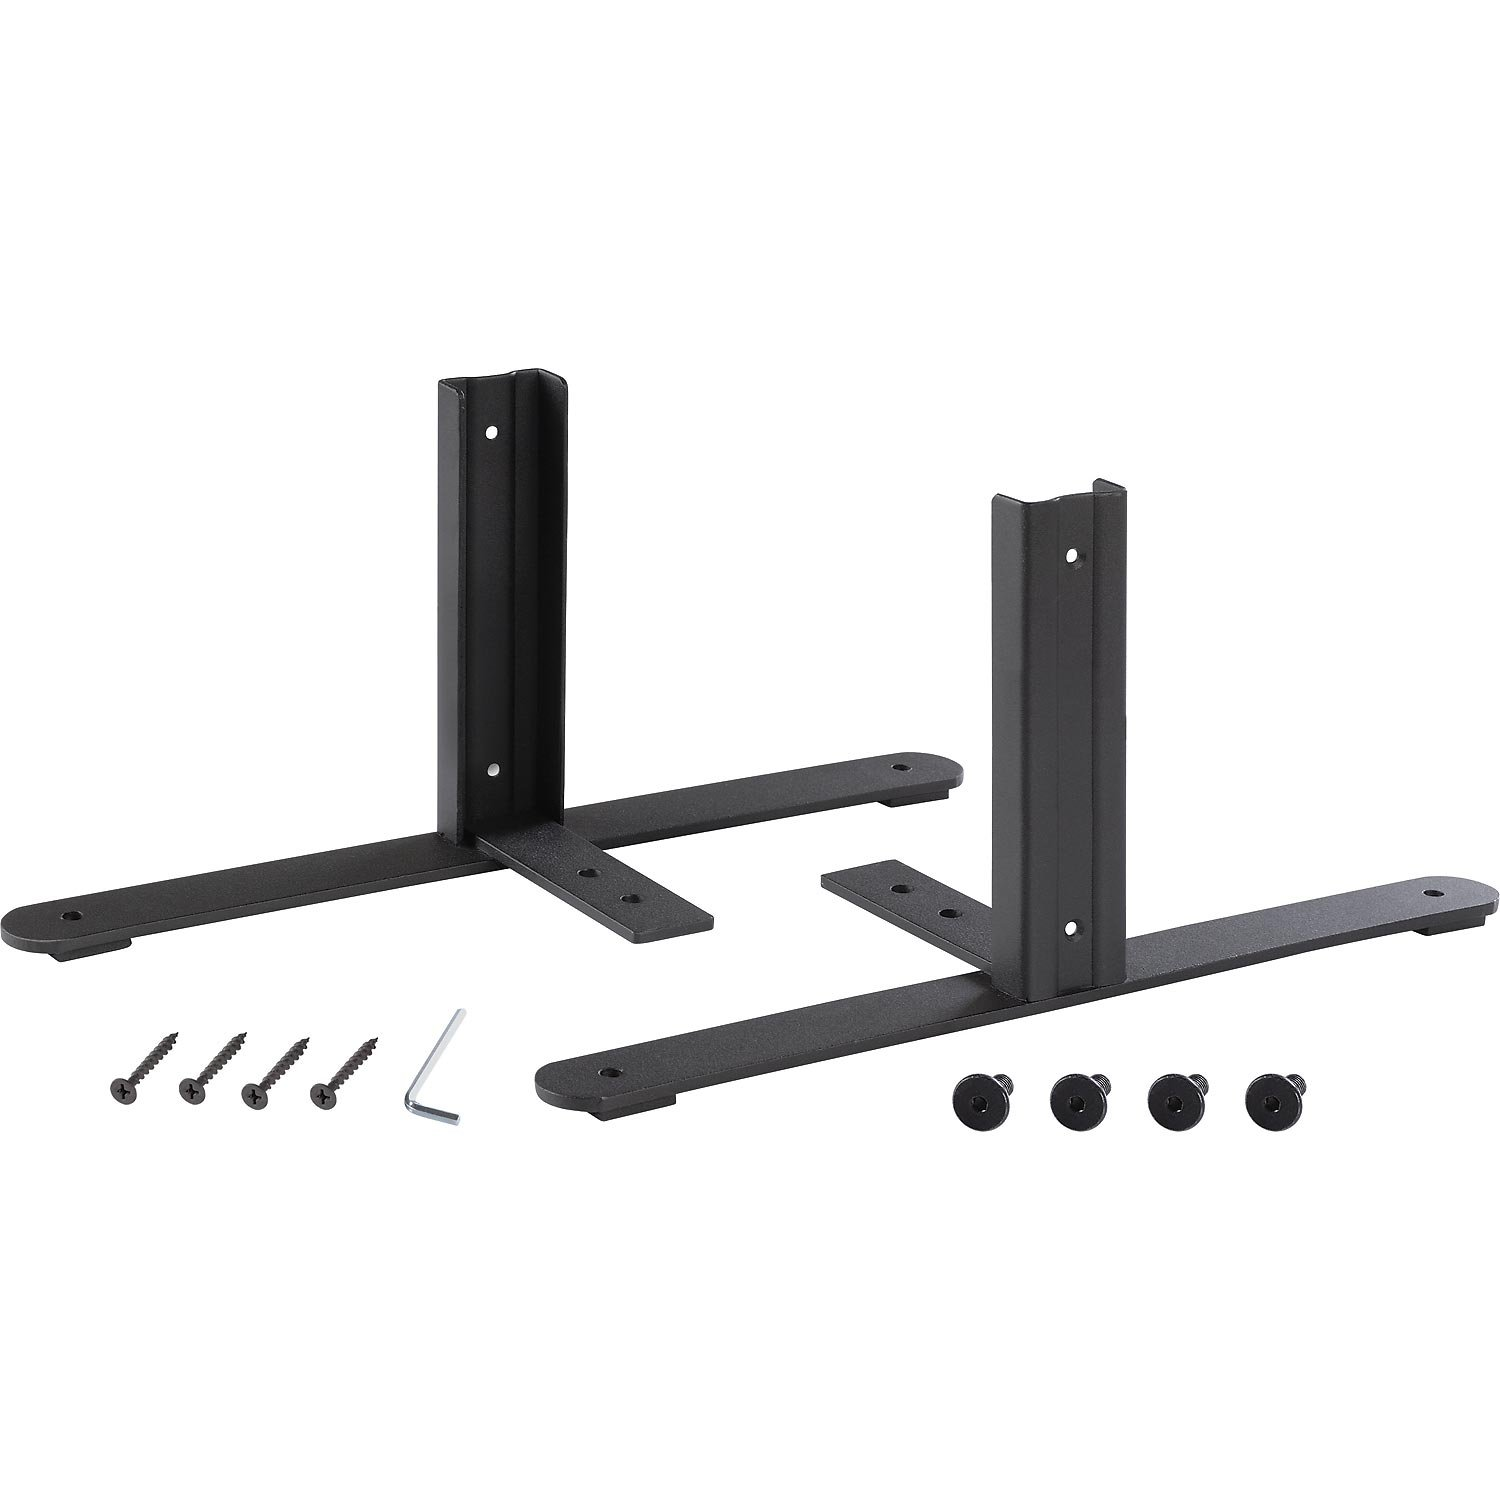 8''H T-Leg Bracket for Office Partition Panels, Black (1 Pair) by Global Industrial